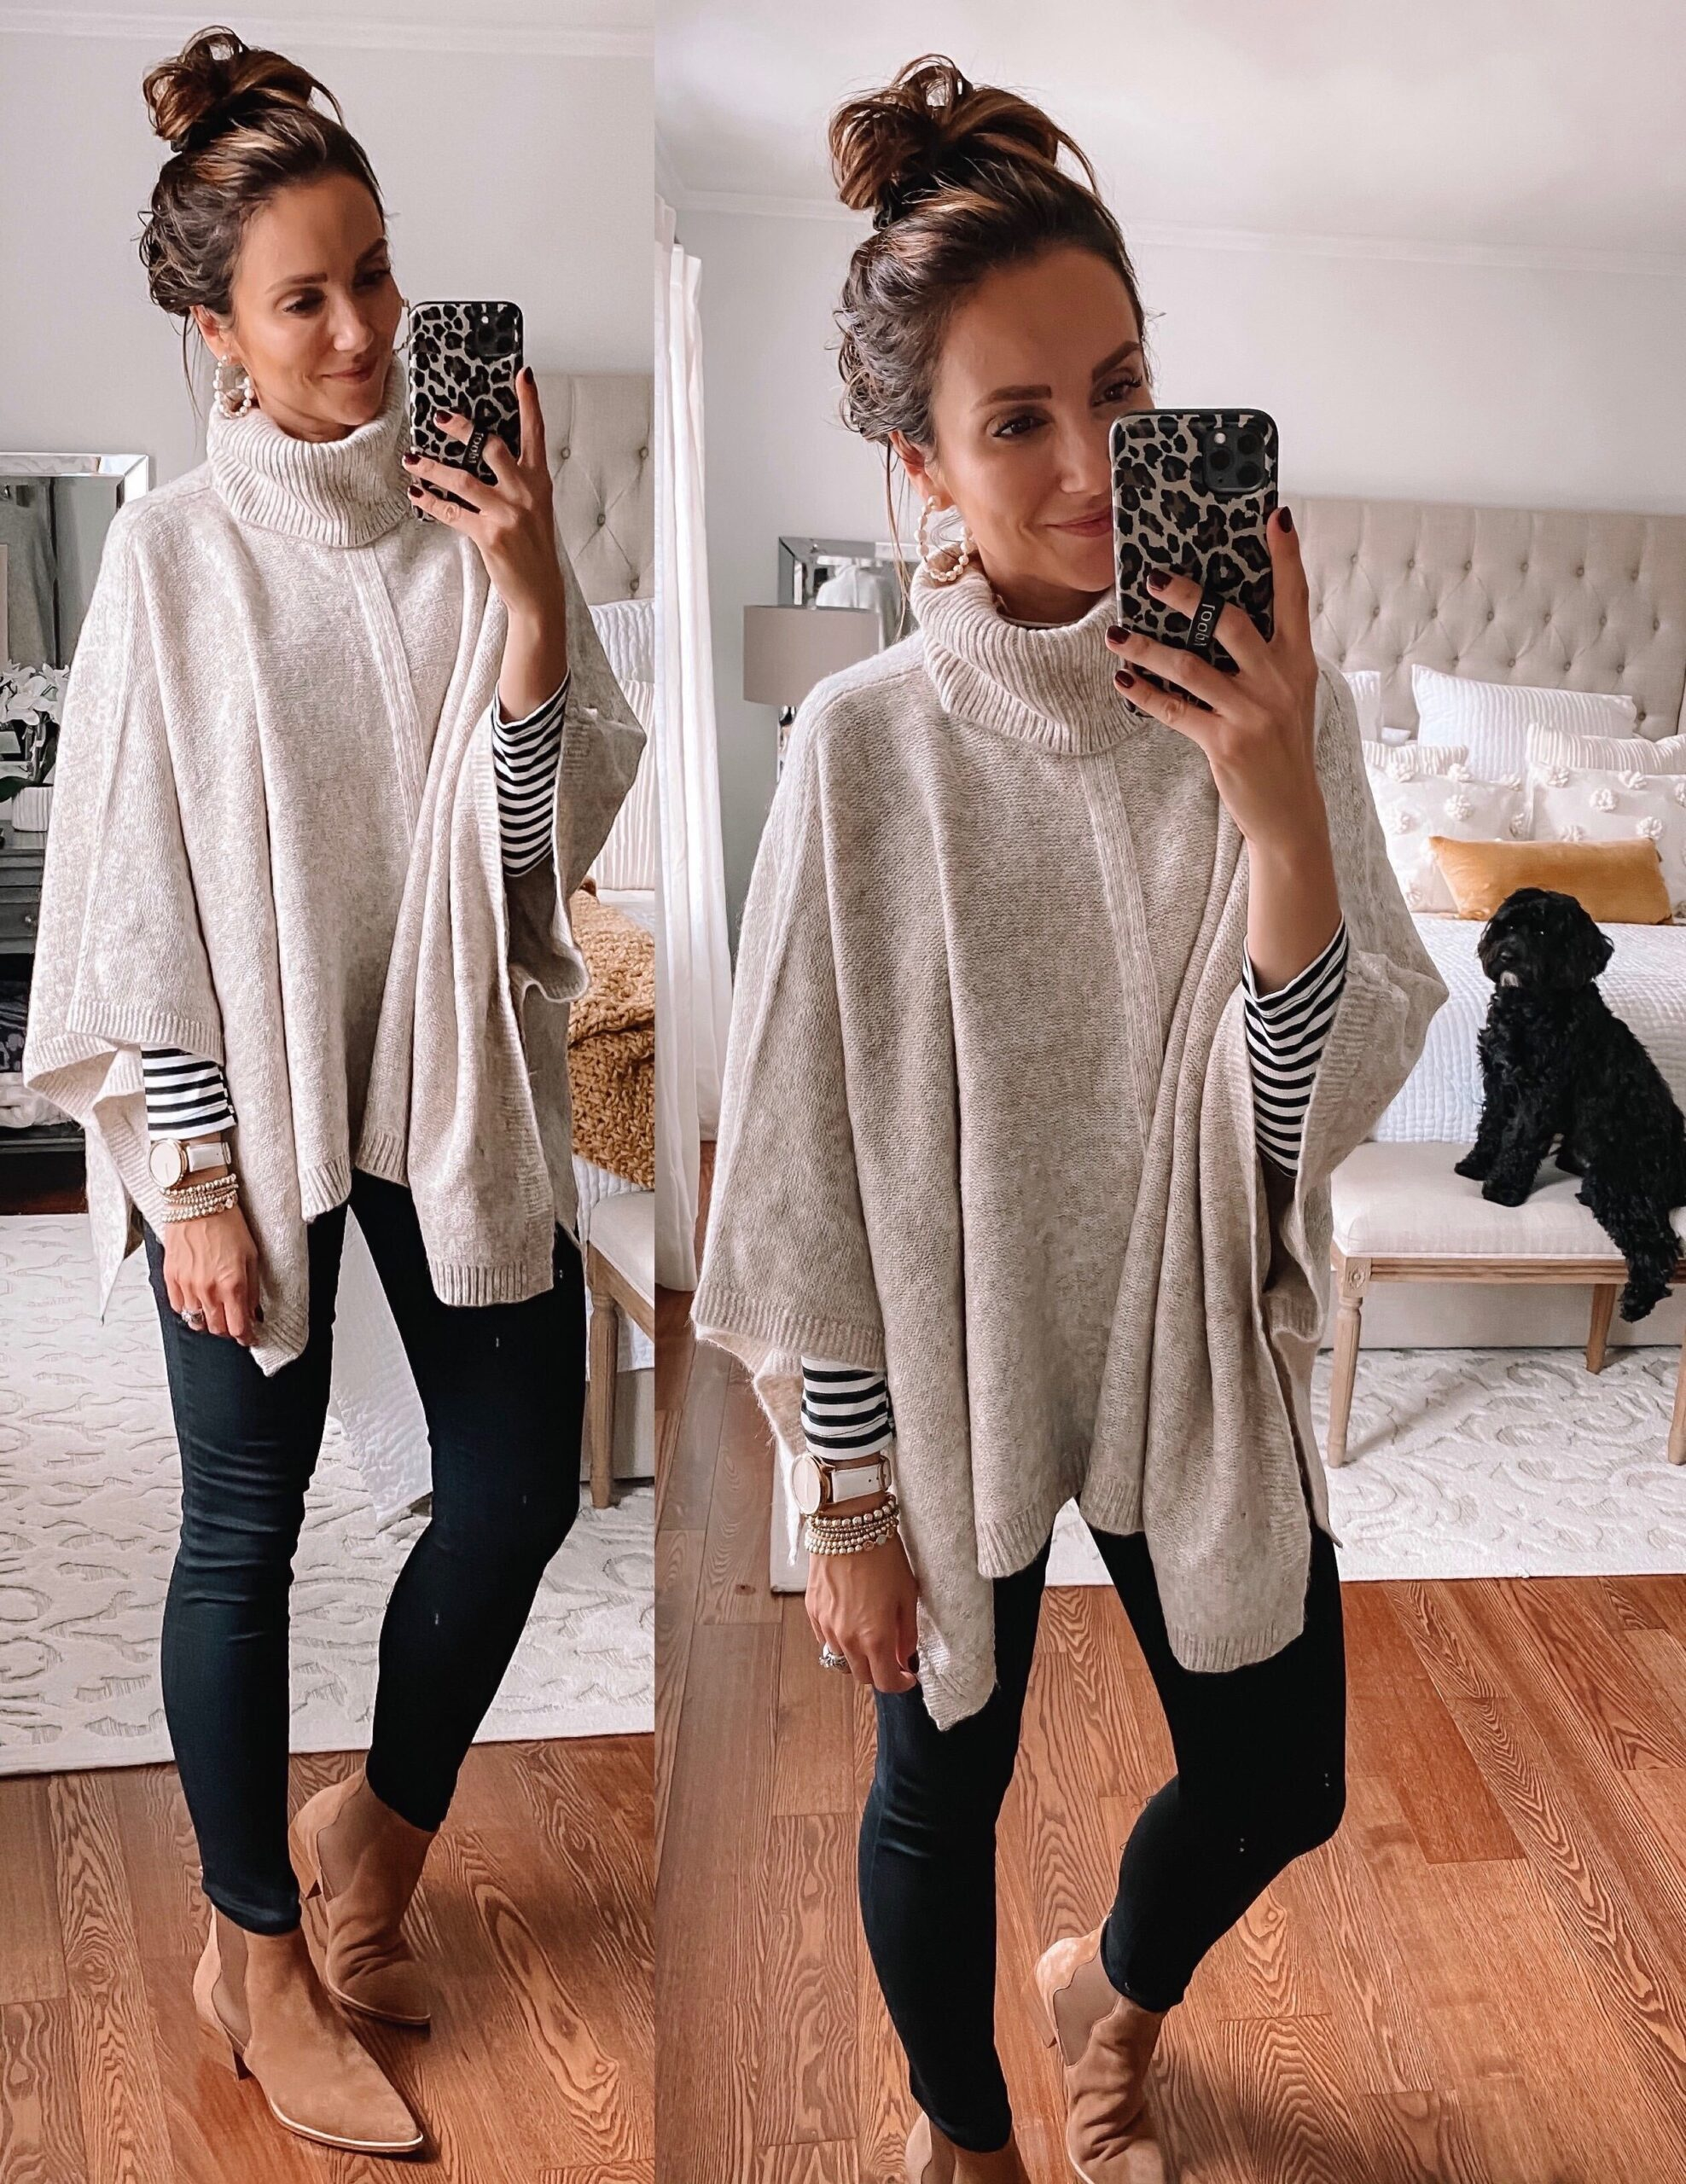 Target style, target poncho, fall outfit idea with poncho